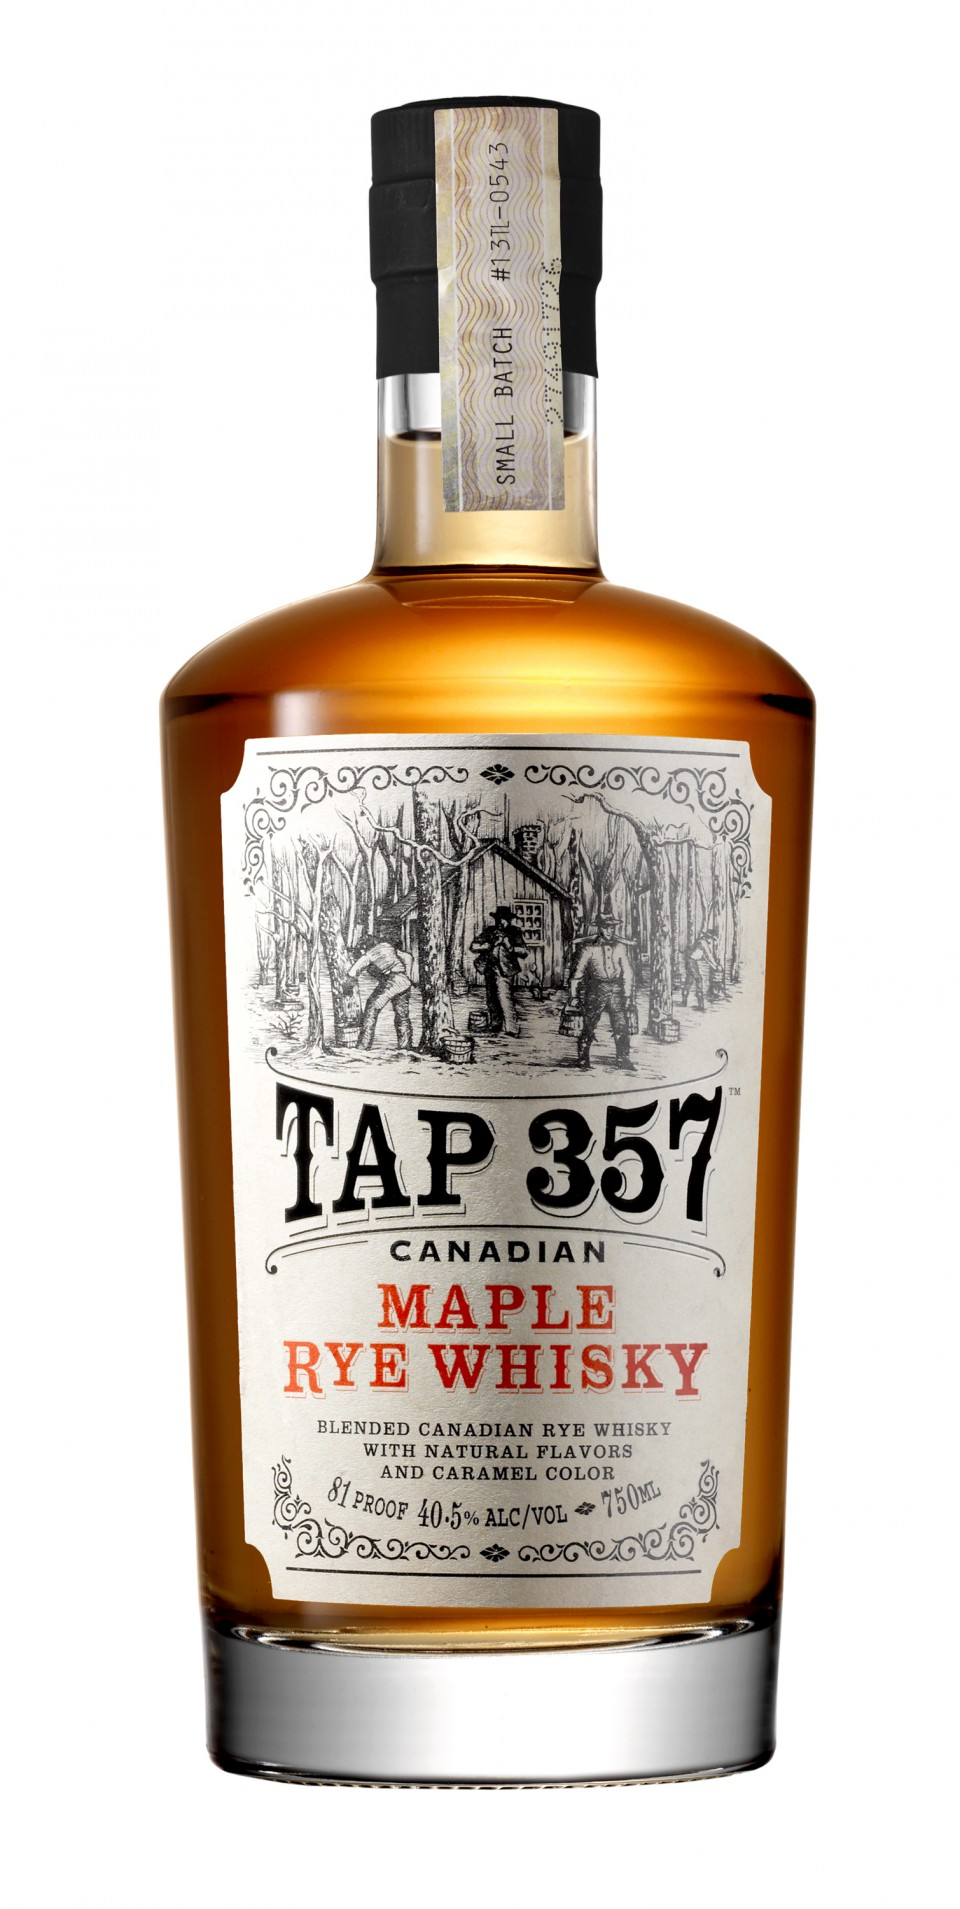 Flavored whiskies often play on the inherent taste profile of the spirit. Tap 357 Maple integrates sweetness with the spice of Canadian rye whisky.